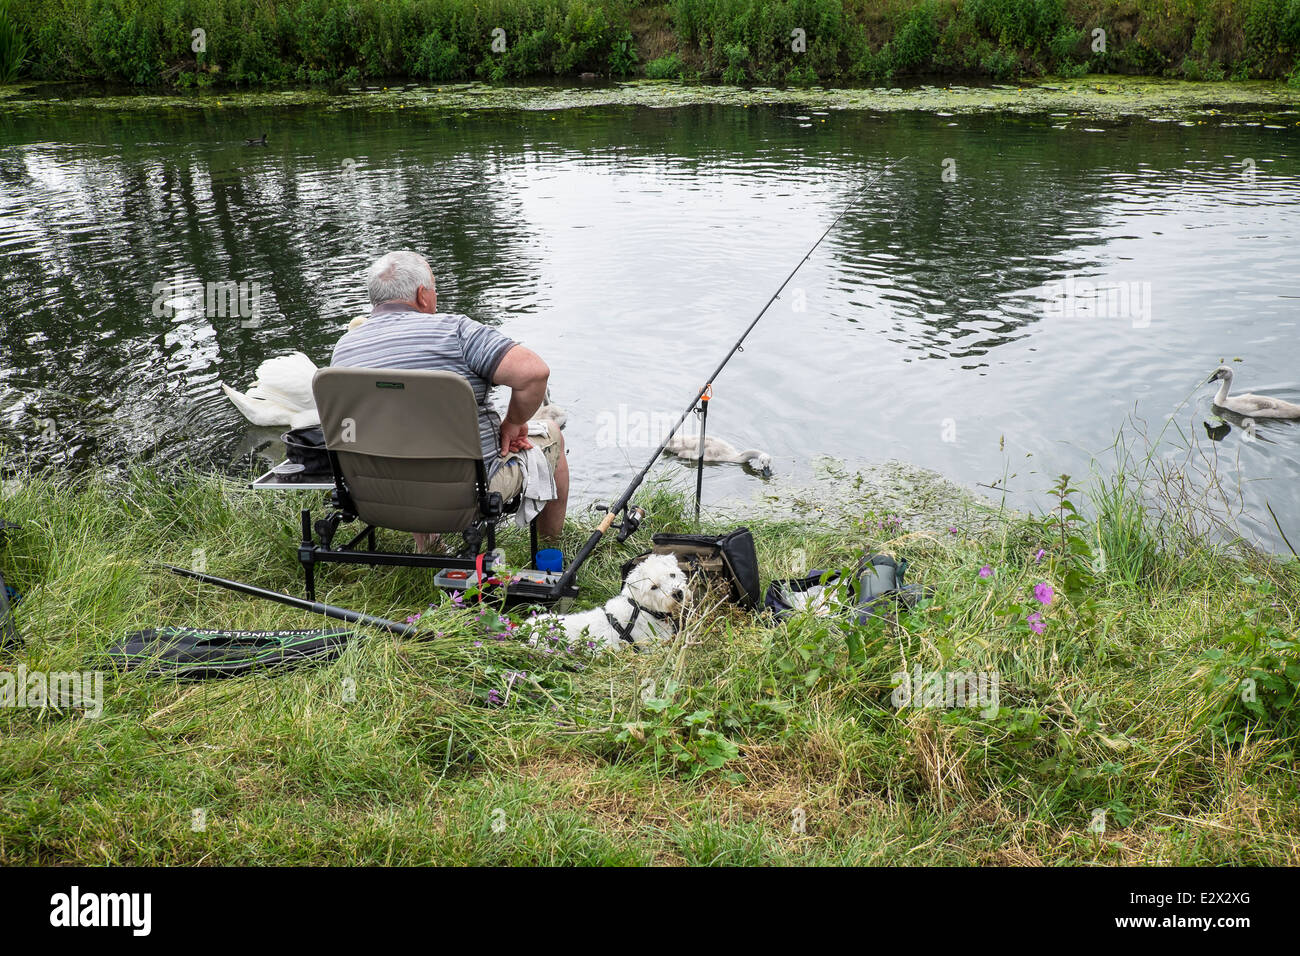 fisherman-and-friend-being-pestered-by-s